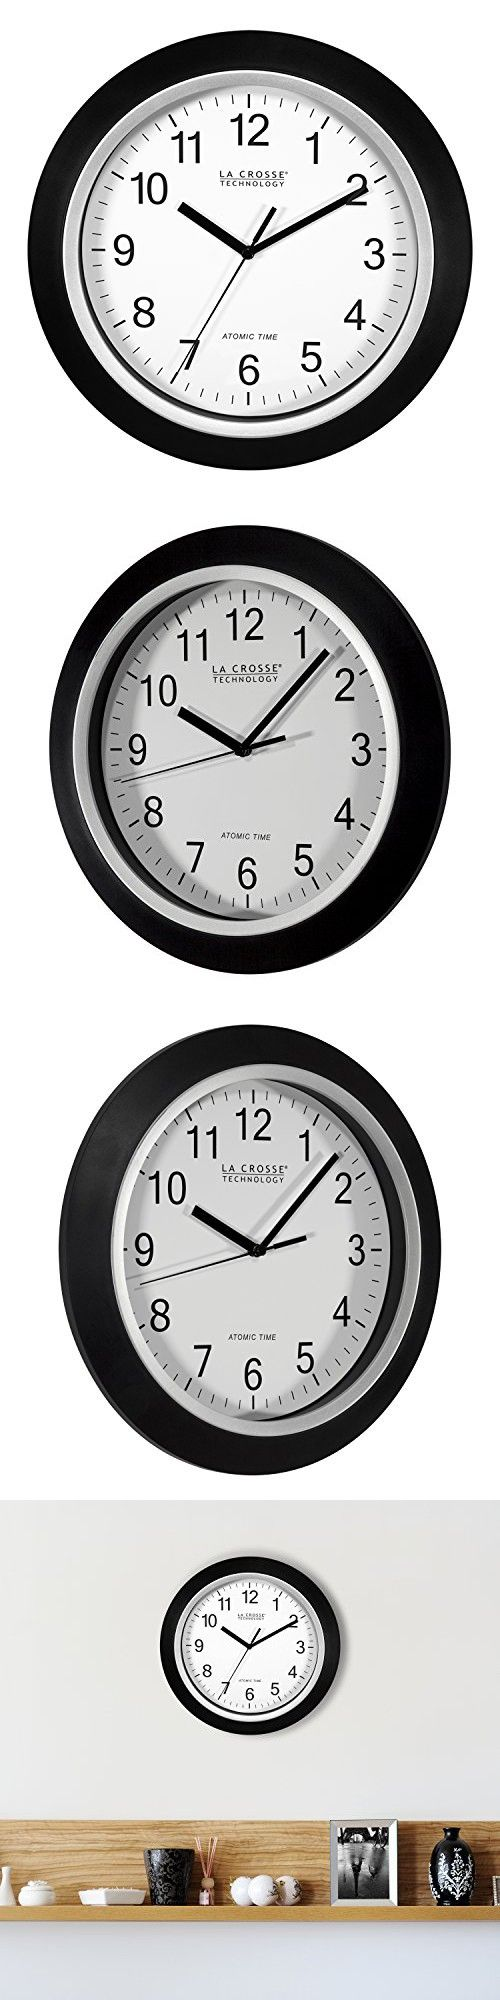 La Crosse Technology Wt 3129b 12 Inch Atomic Analog Wall Clock Black Clock Atomic Wall Clock Wall